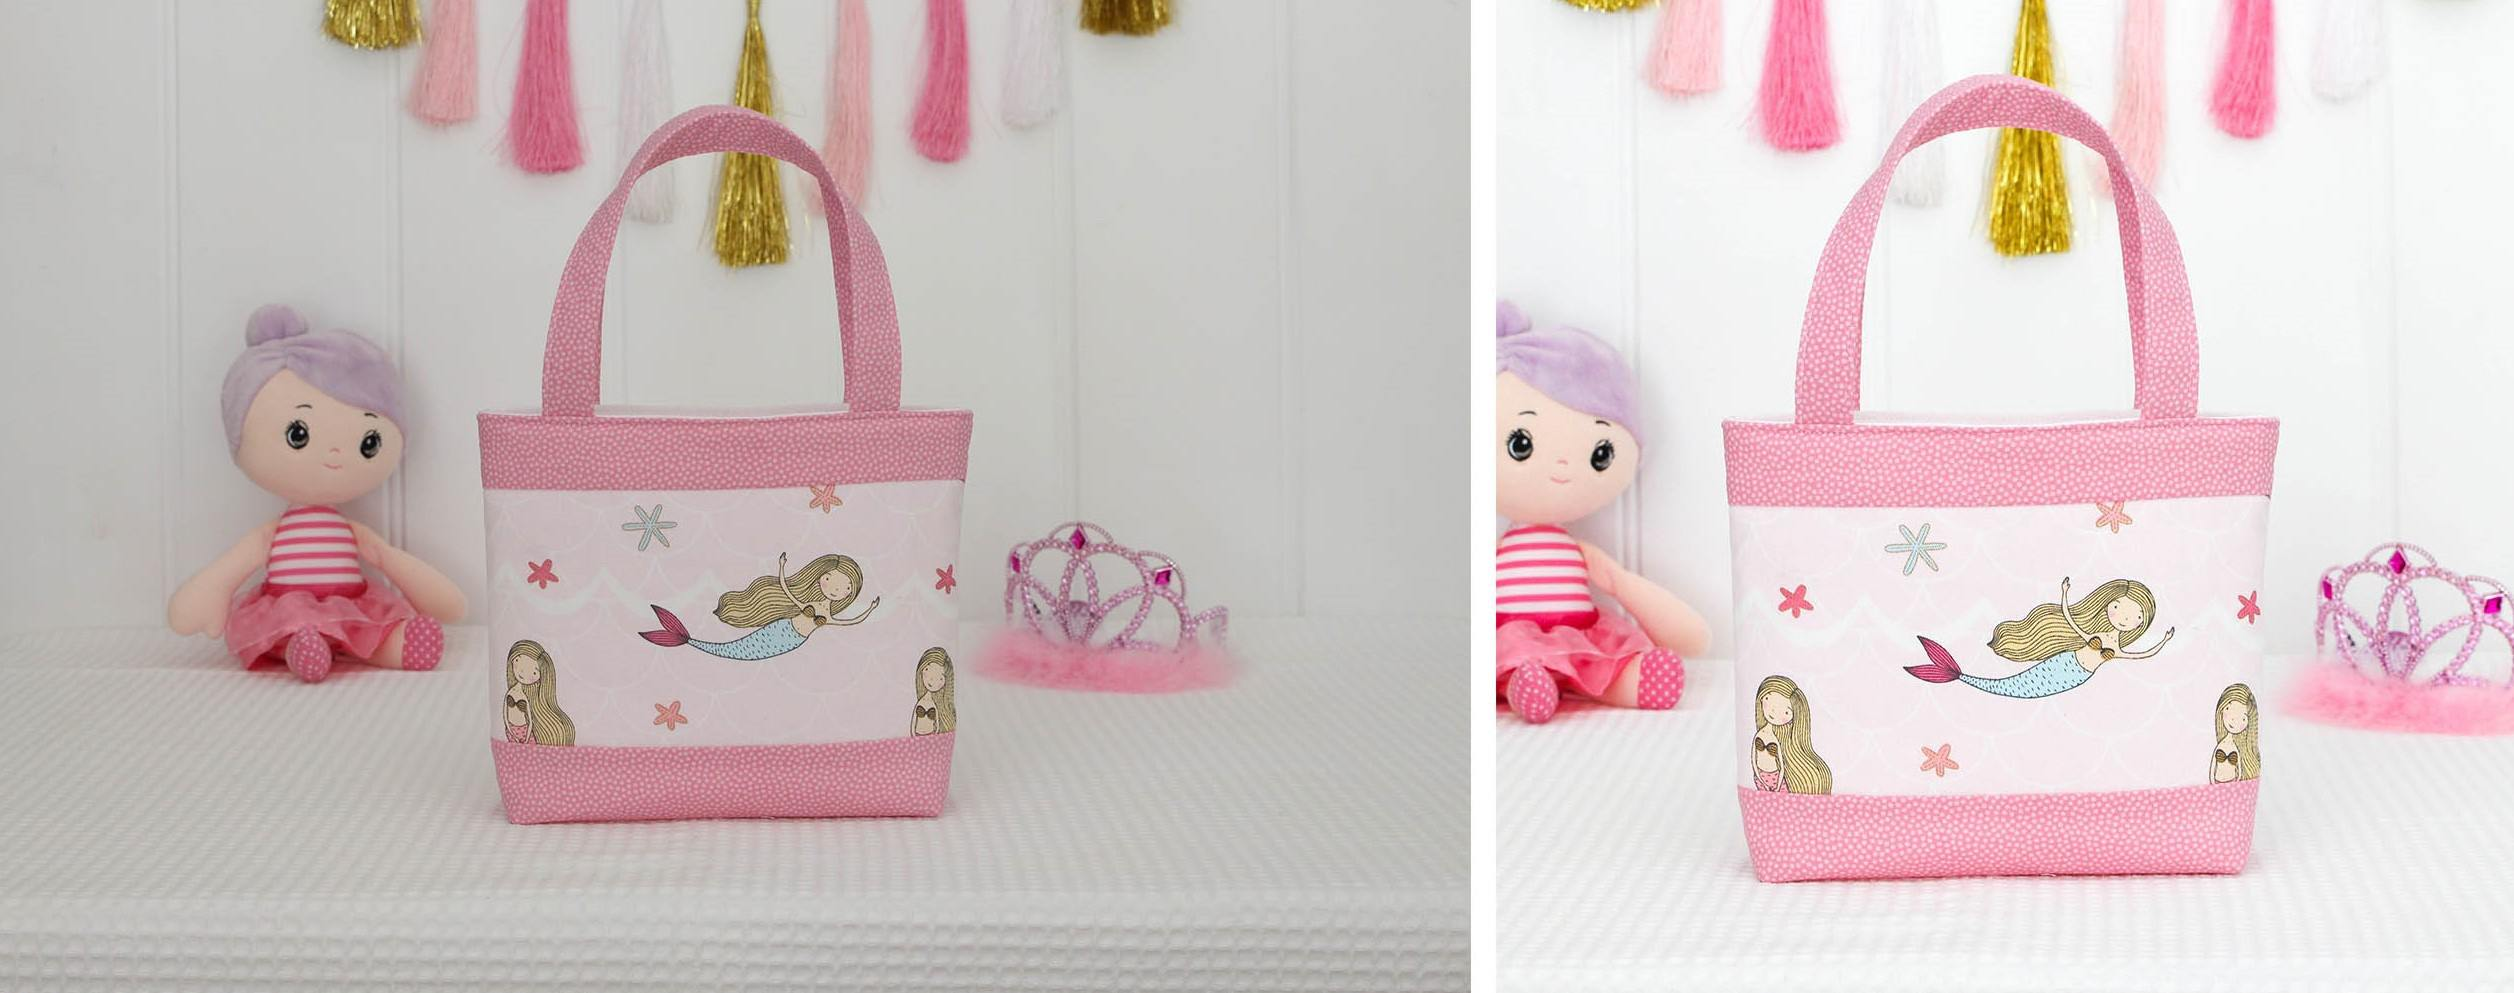 Before and after of children's handbag product photo cropping and brightening